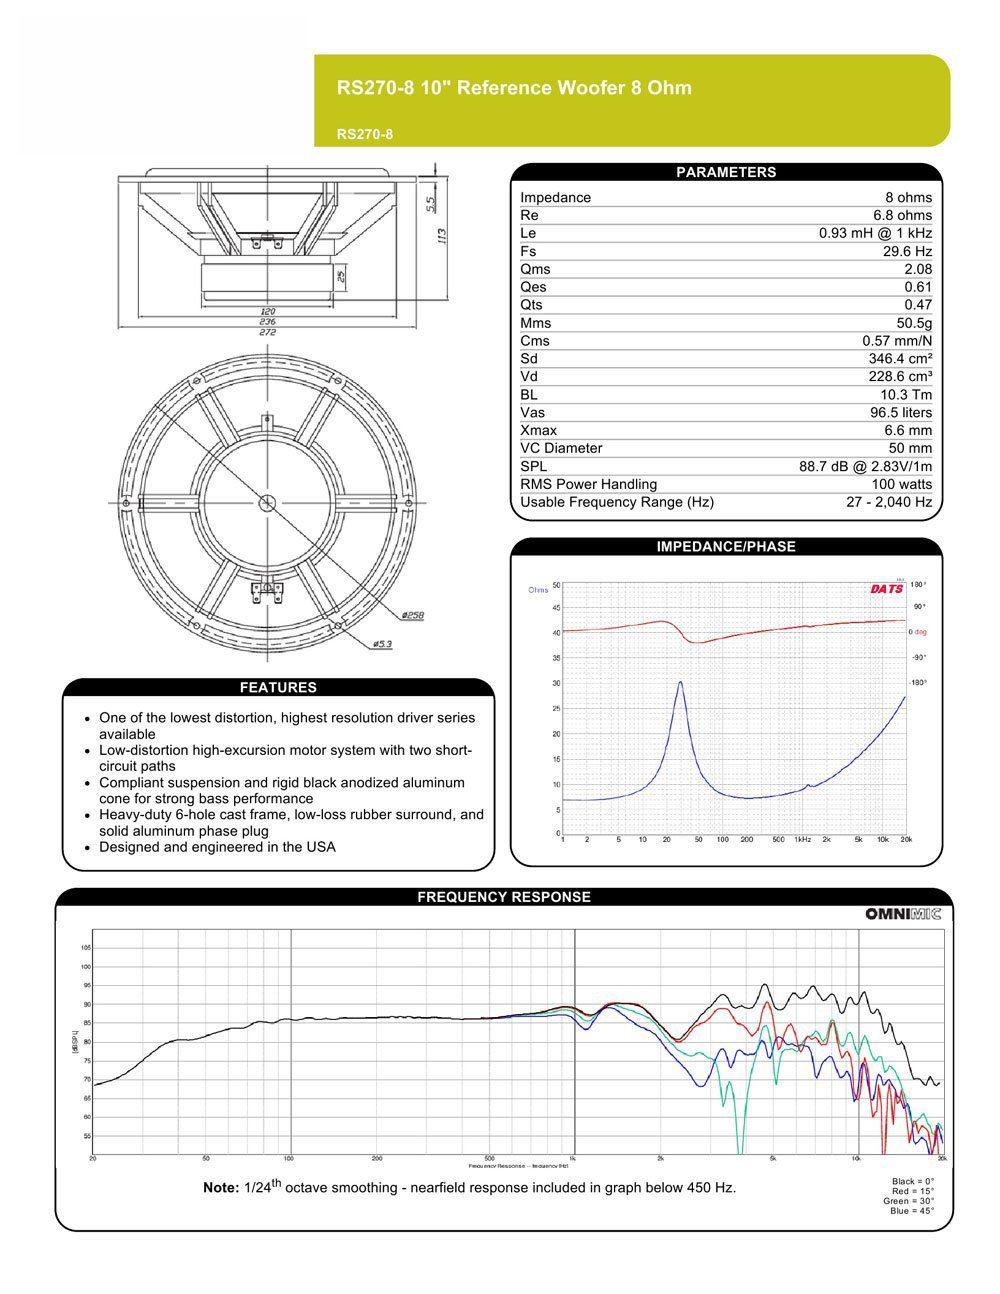 Kicker Ds60 Wiring Diagram Library L5 Solo Bark Amazoncom Dayton Audio Rs270 8 10 Reference Woofer Car Electronics Cute Speaker Images Electrical Circuit New Rh Wommapedia